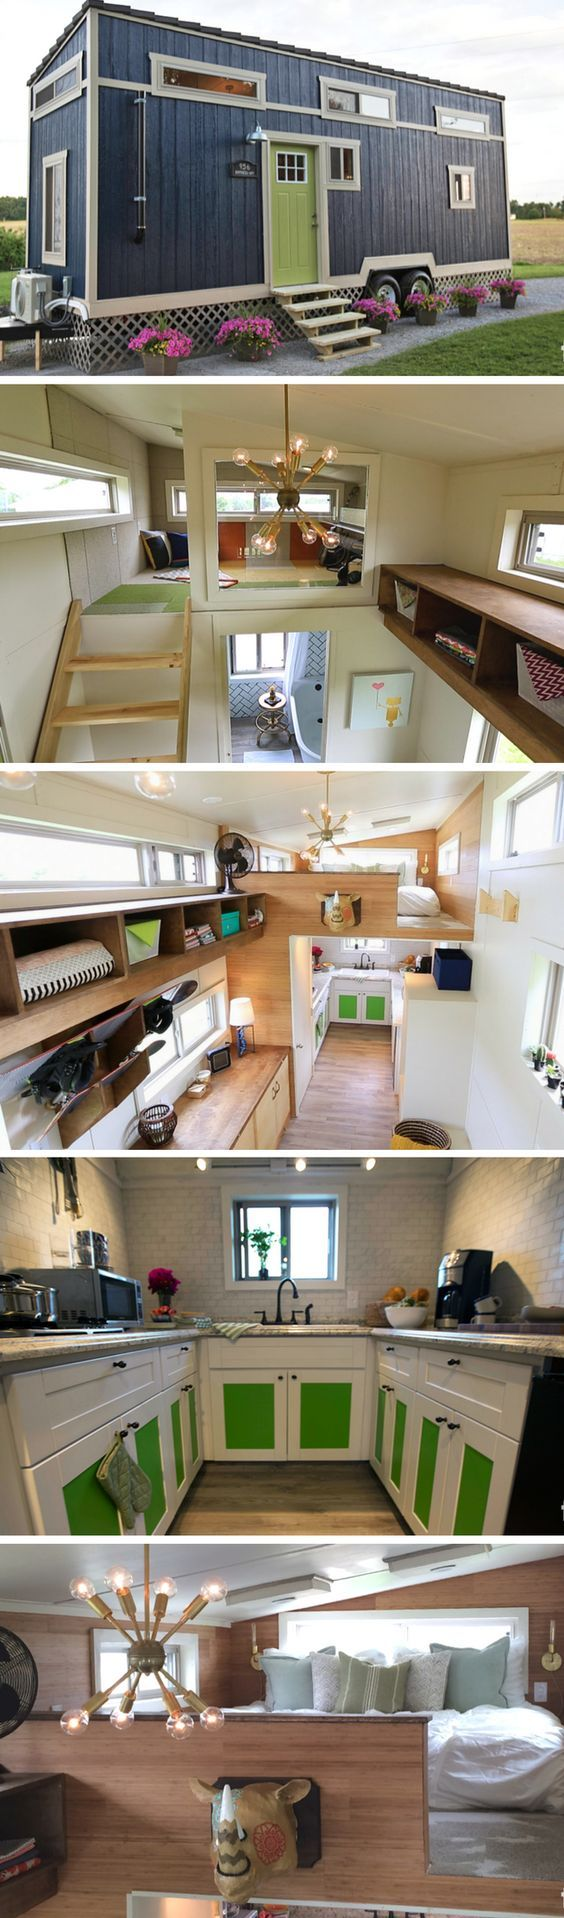 The bohemian escape  sq ft tiny house designed and built on show nation minus green cabinets also best images diy decoration crafts creative decor rh pinterest